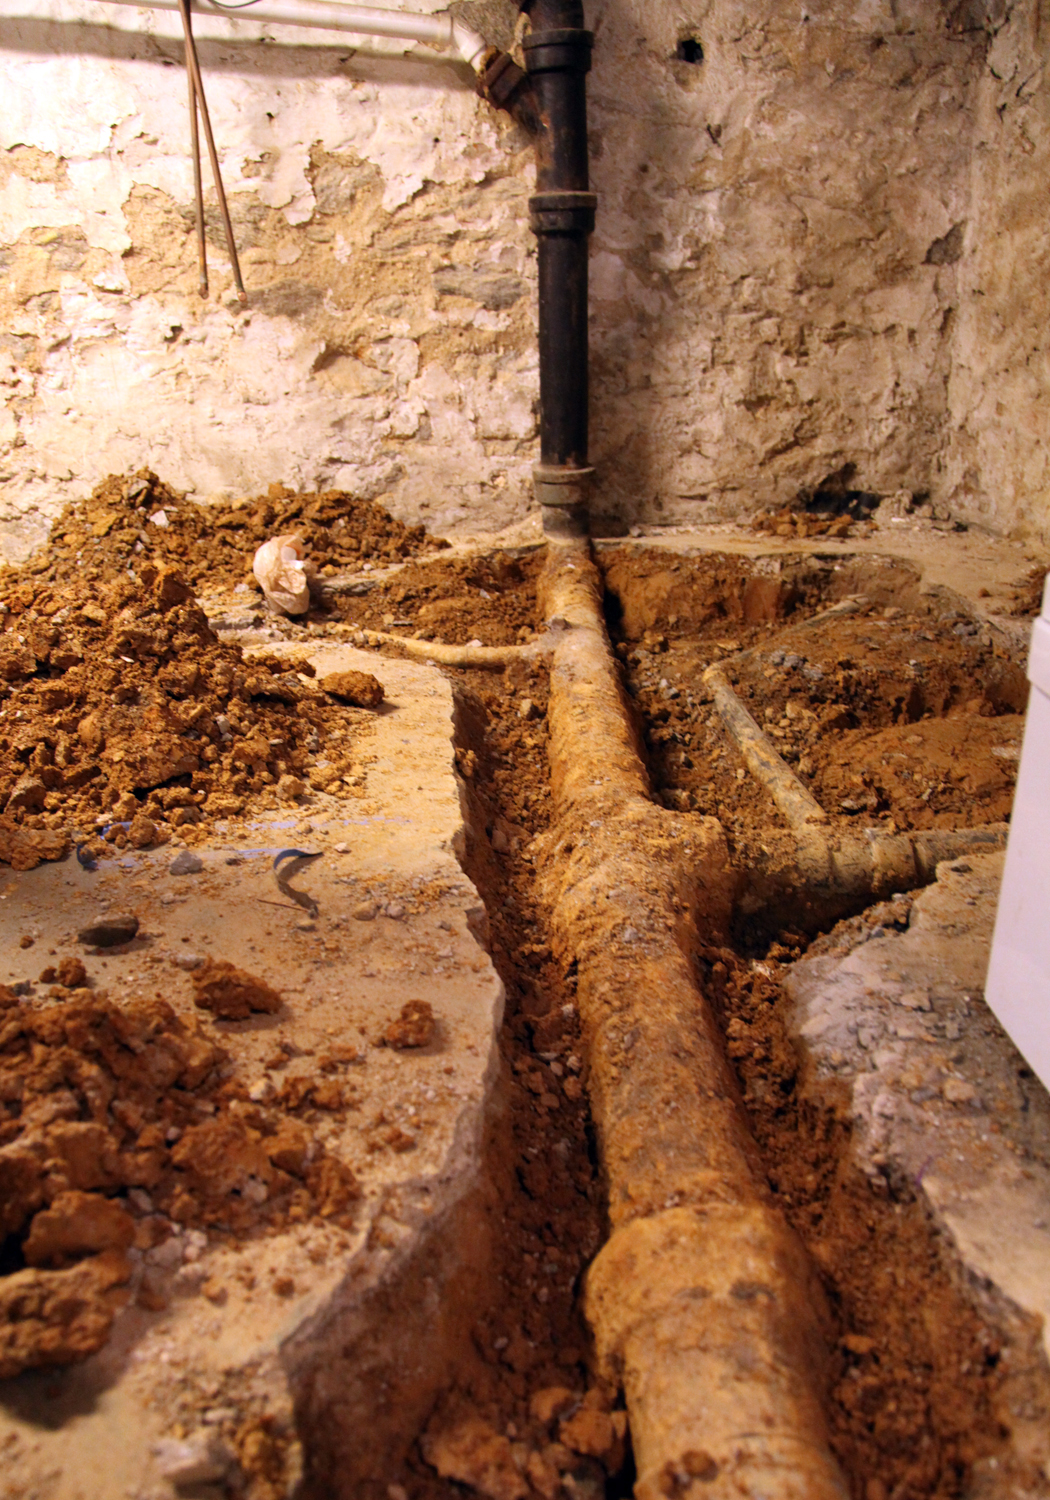 Cast ... & Our Basement Part 8: Digging out for the Basement Plumbing | Stately ...